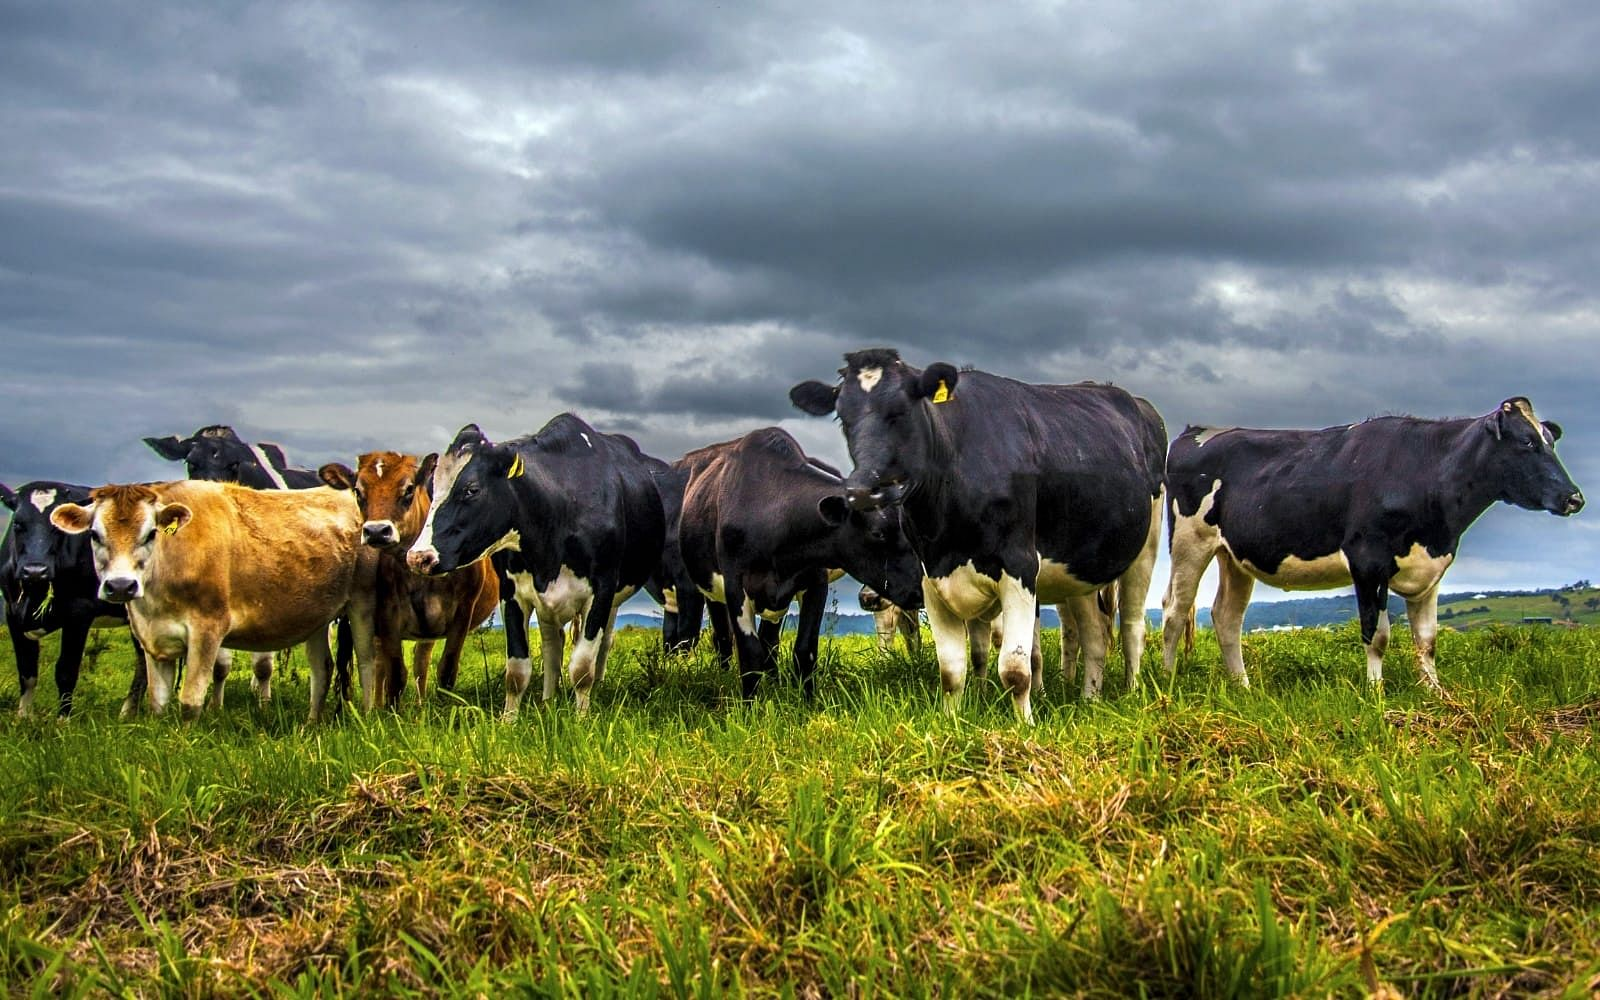 Dairy cows in a paddock with a stormy sky overhead. Photo by Josh McCue.